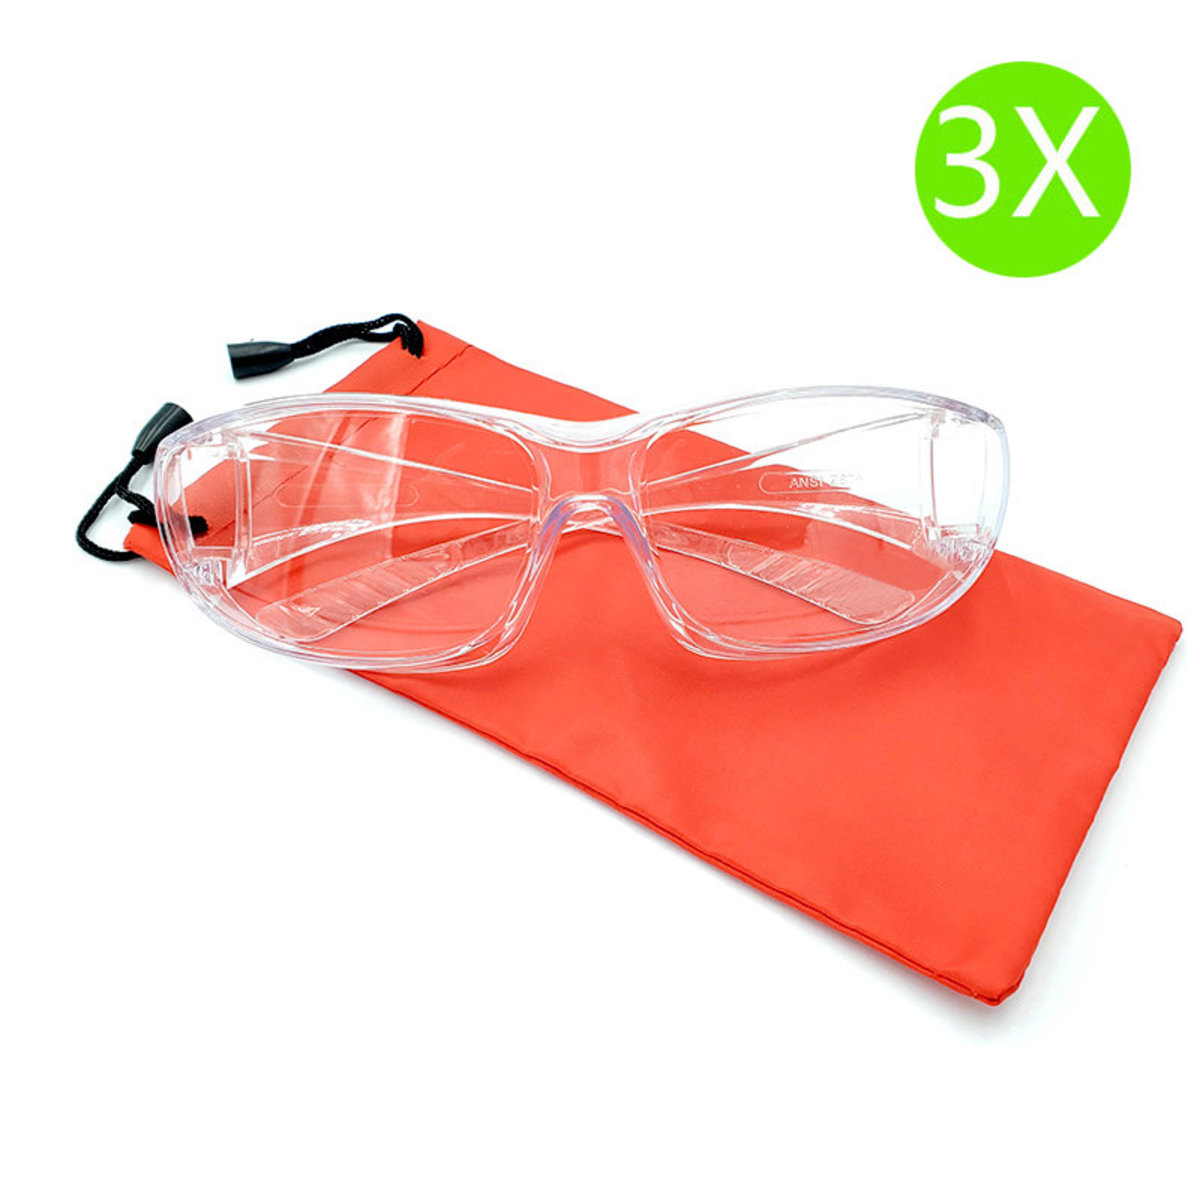 Taiwan Made 3X Transparent Goggles against Droplet Infection 3 pairs (Orange Bags)